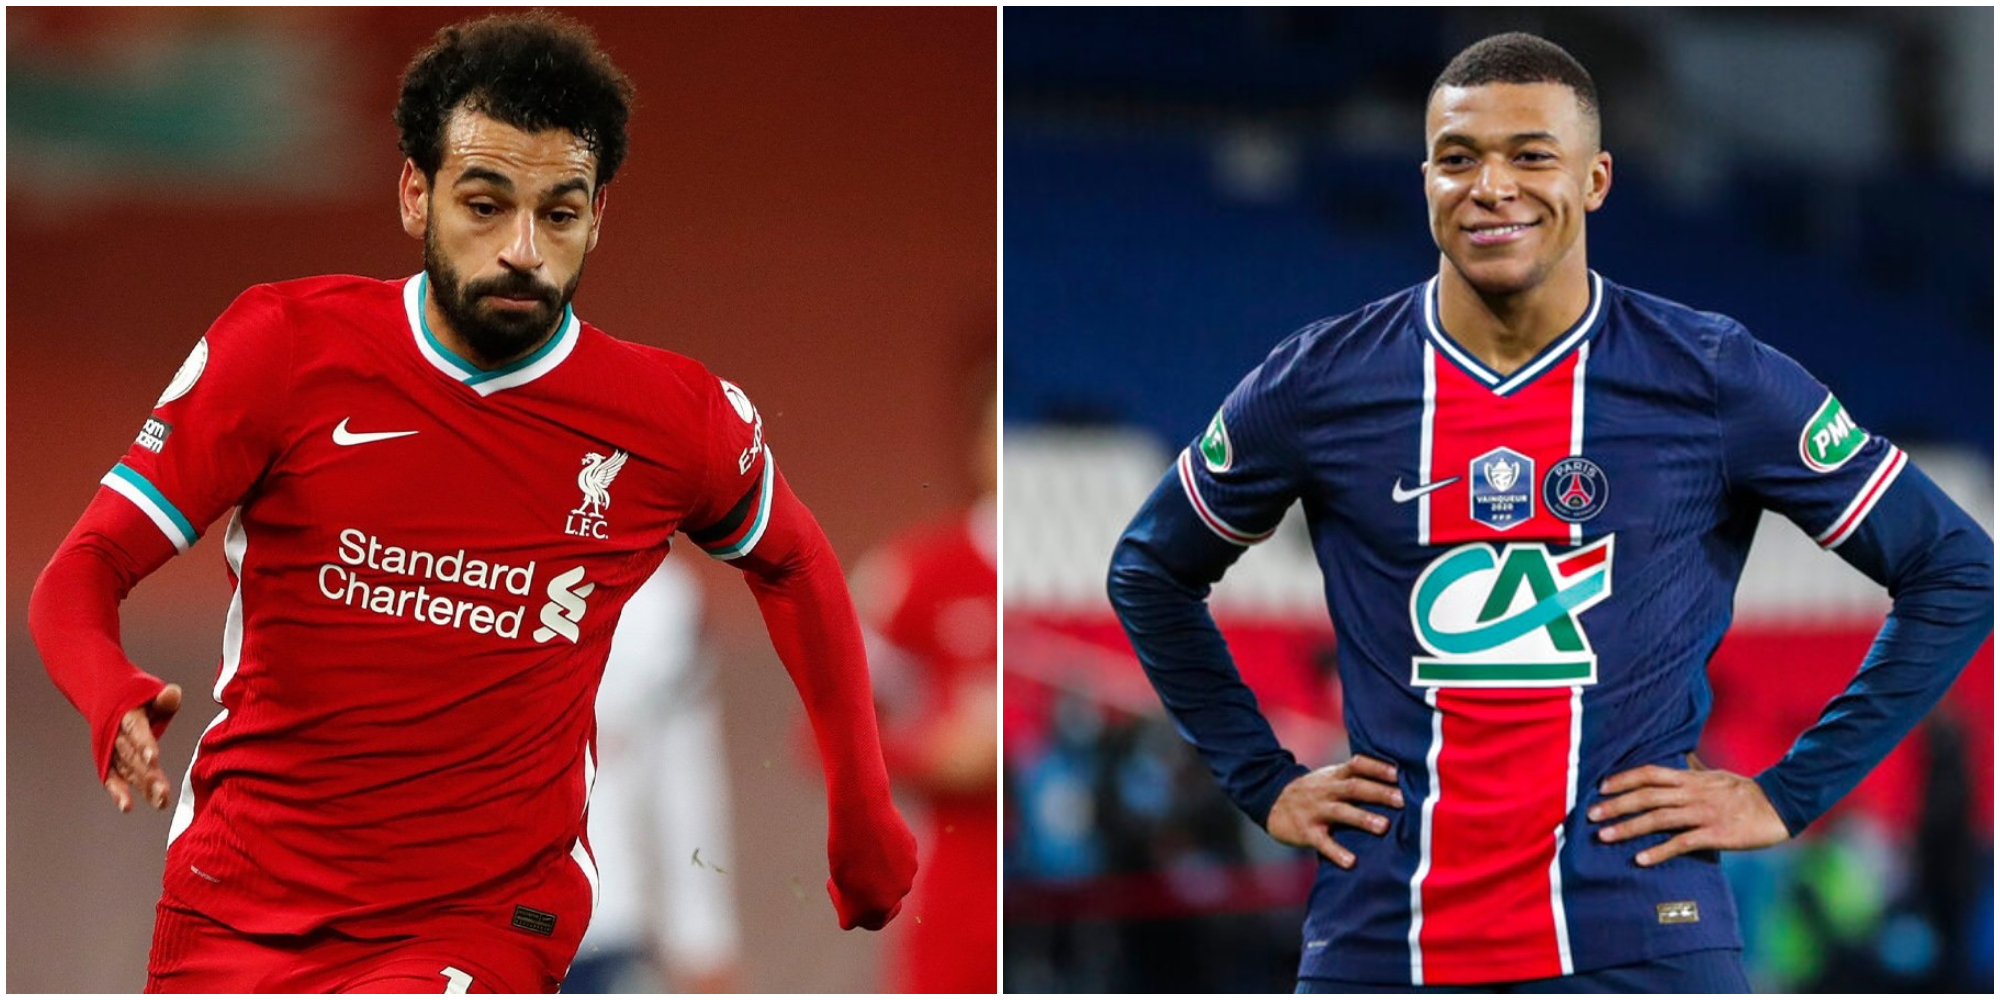 New report claims Liverpool's 20-goal star wants to leave as PSG see forward as a Mbappe replacement – Le Parisien